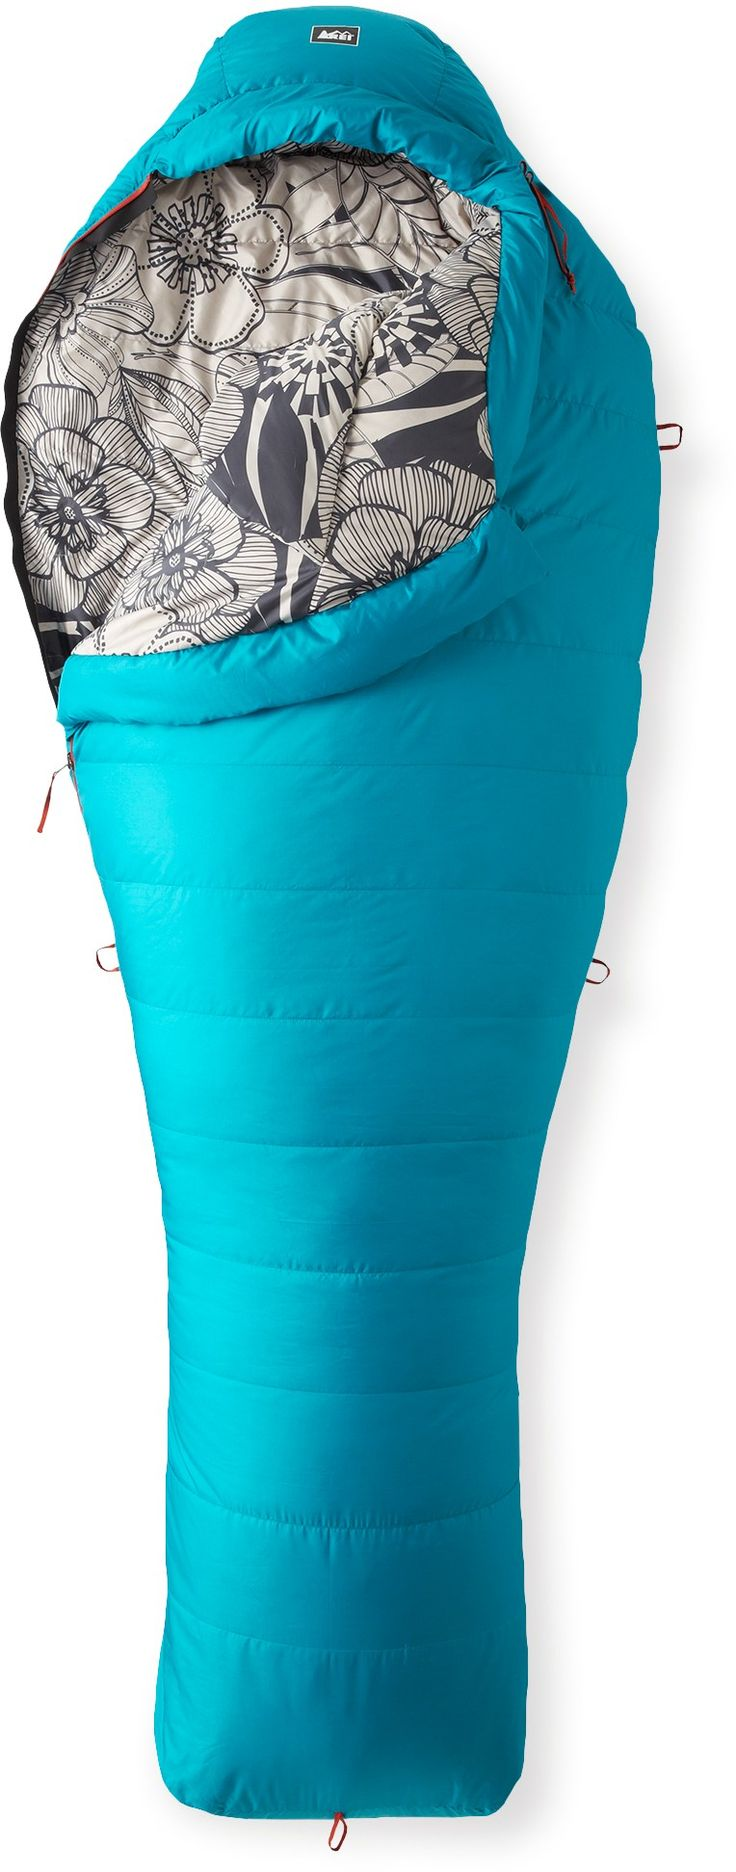 Great color and bonus, it's water repellent!